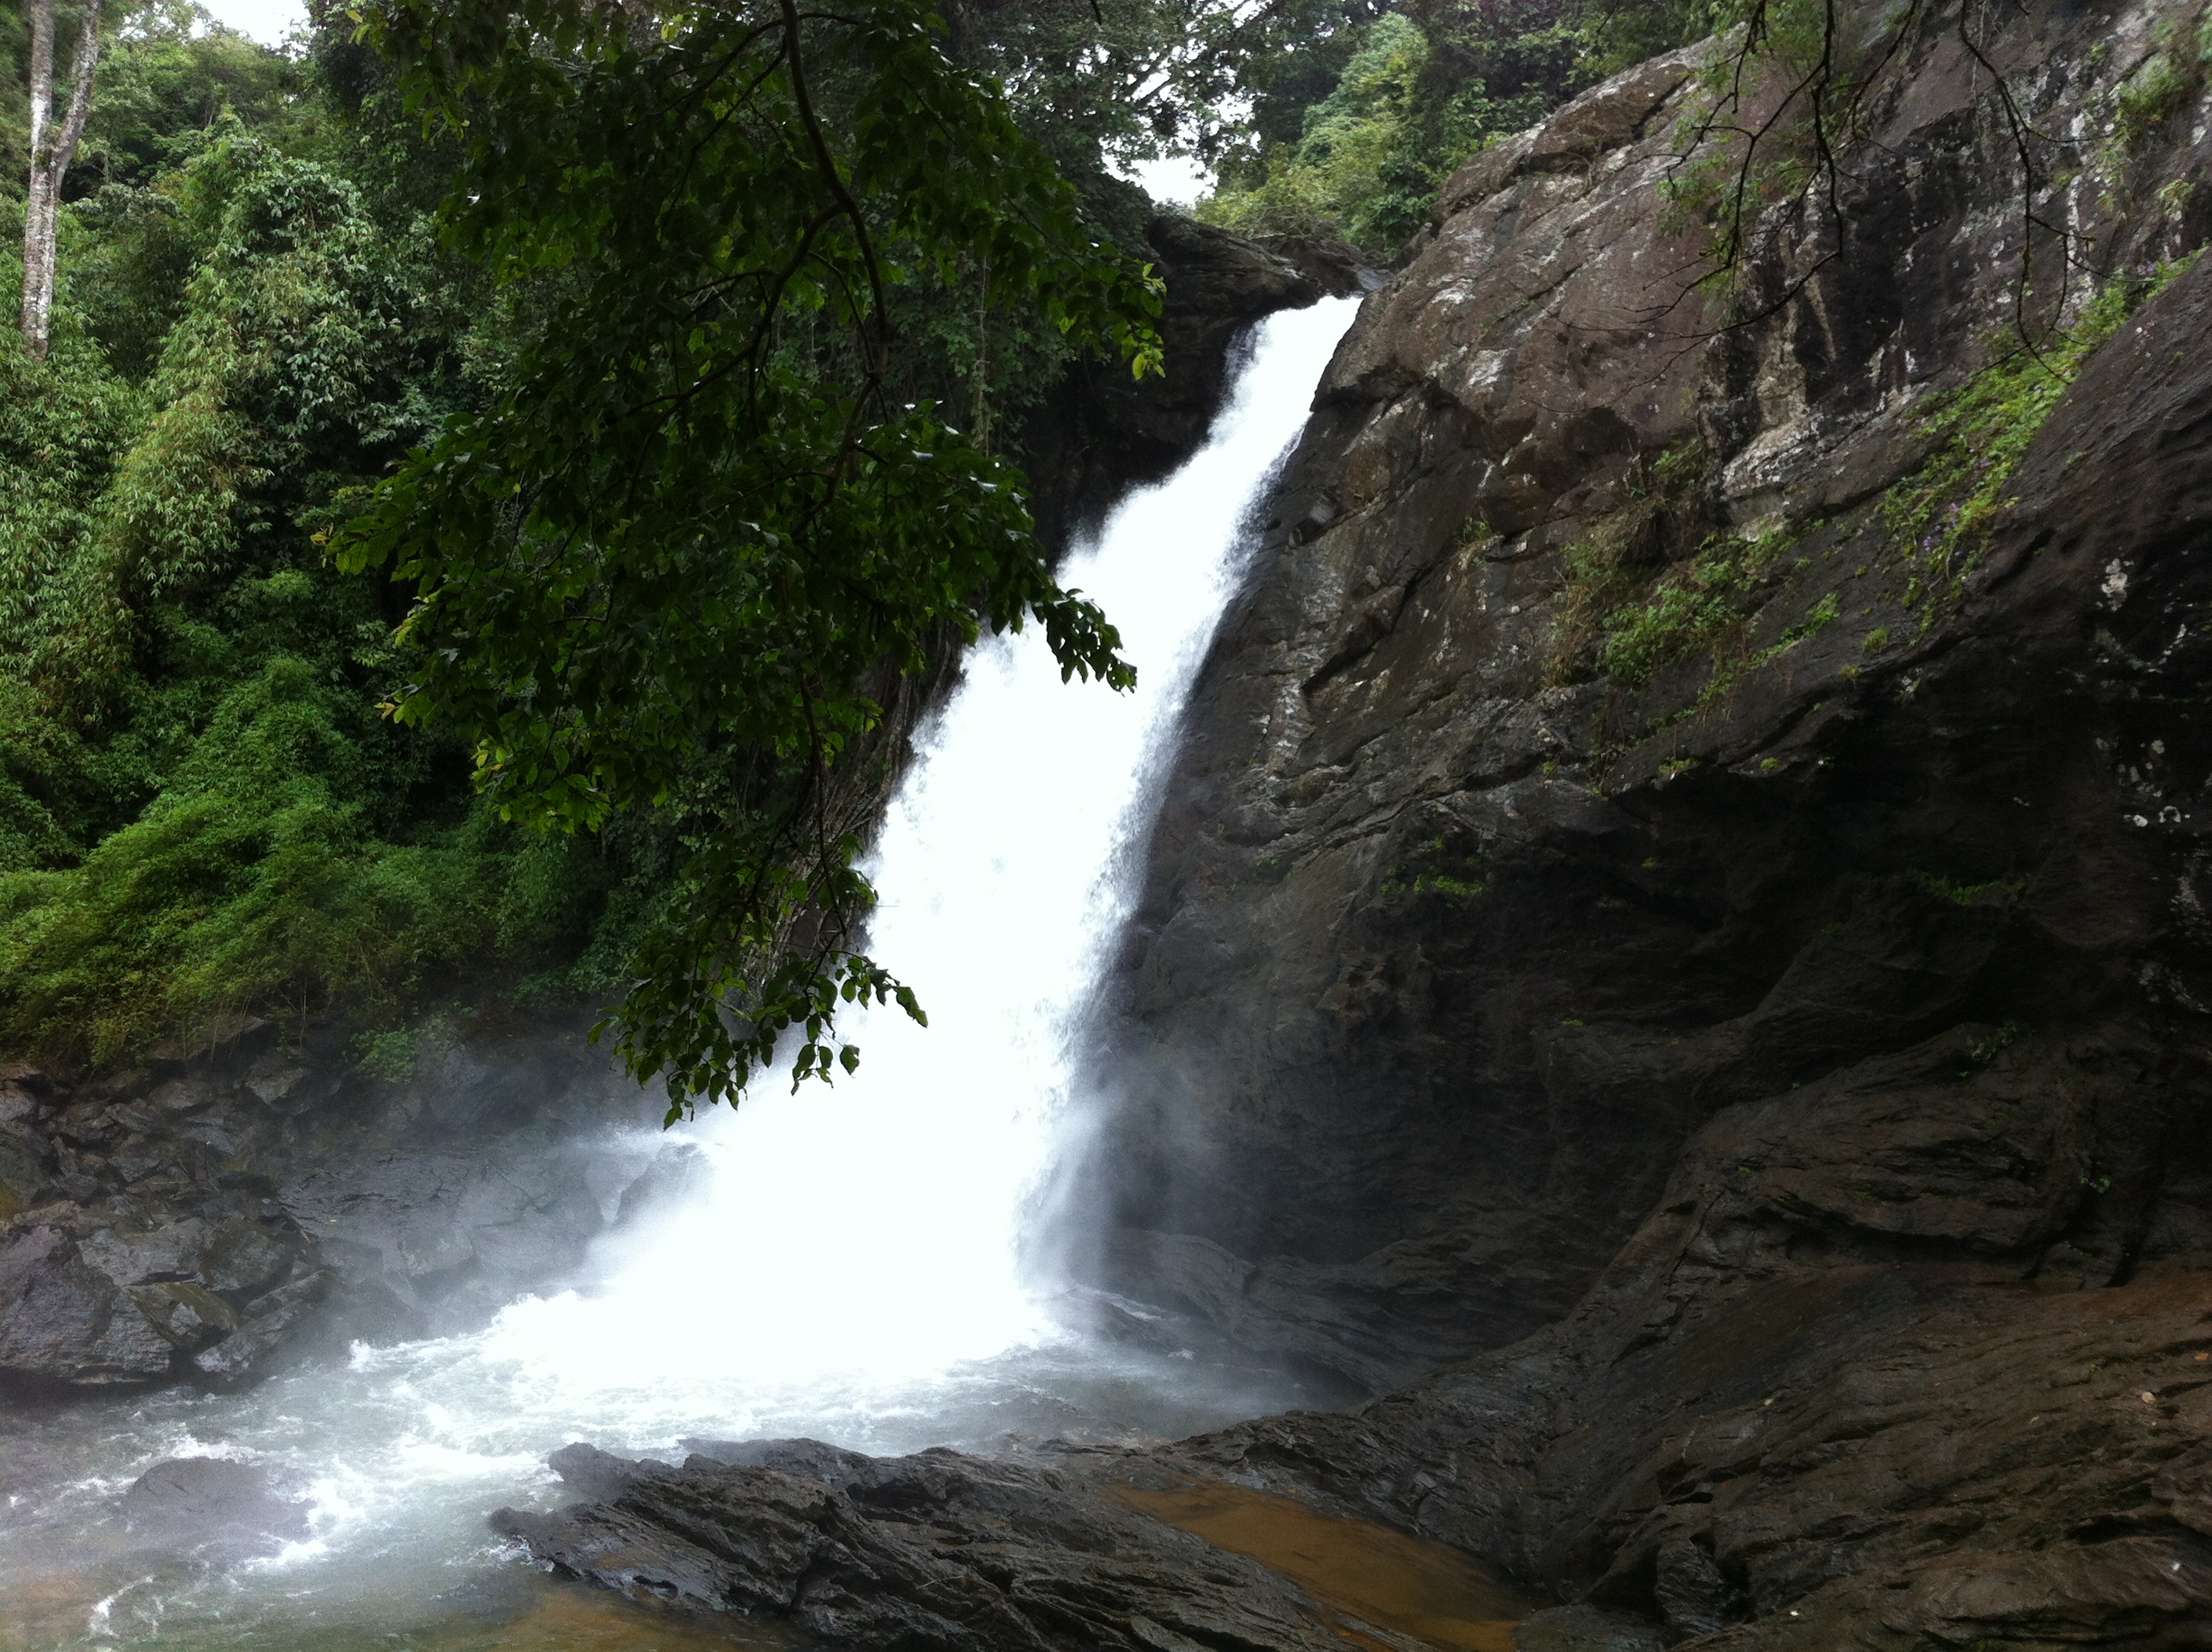 Soochipara falls, one of the beautiful attractions in Vythiri